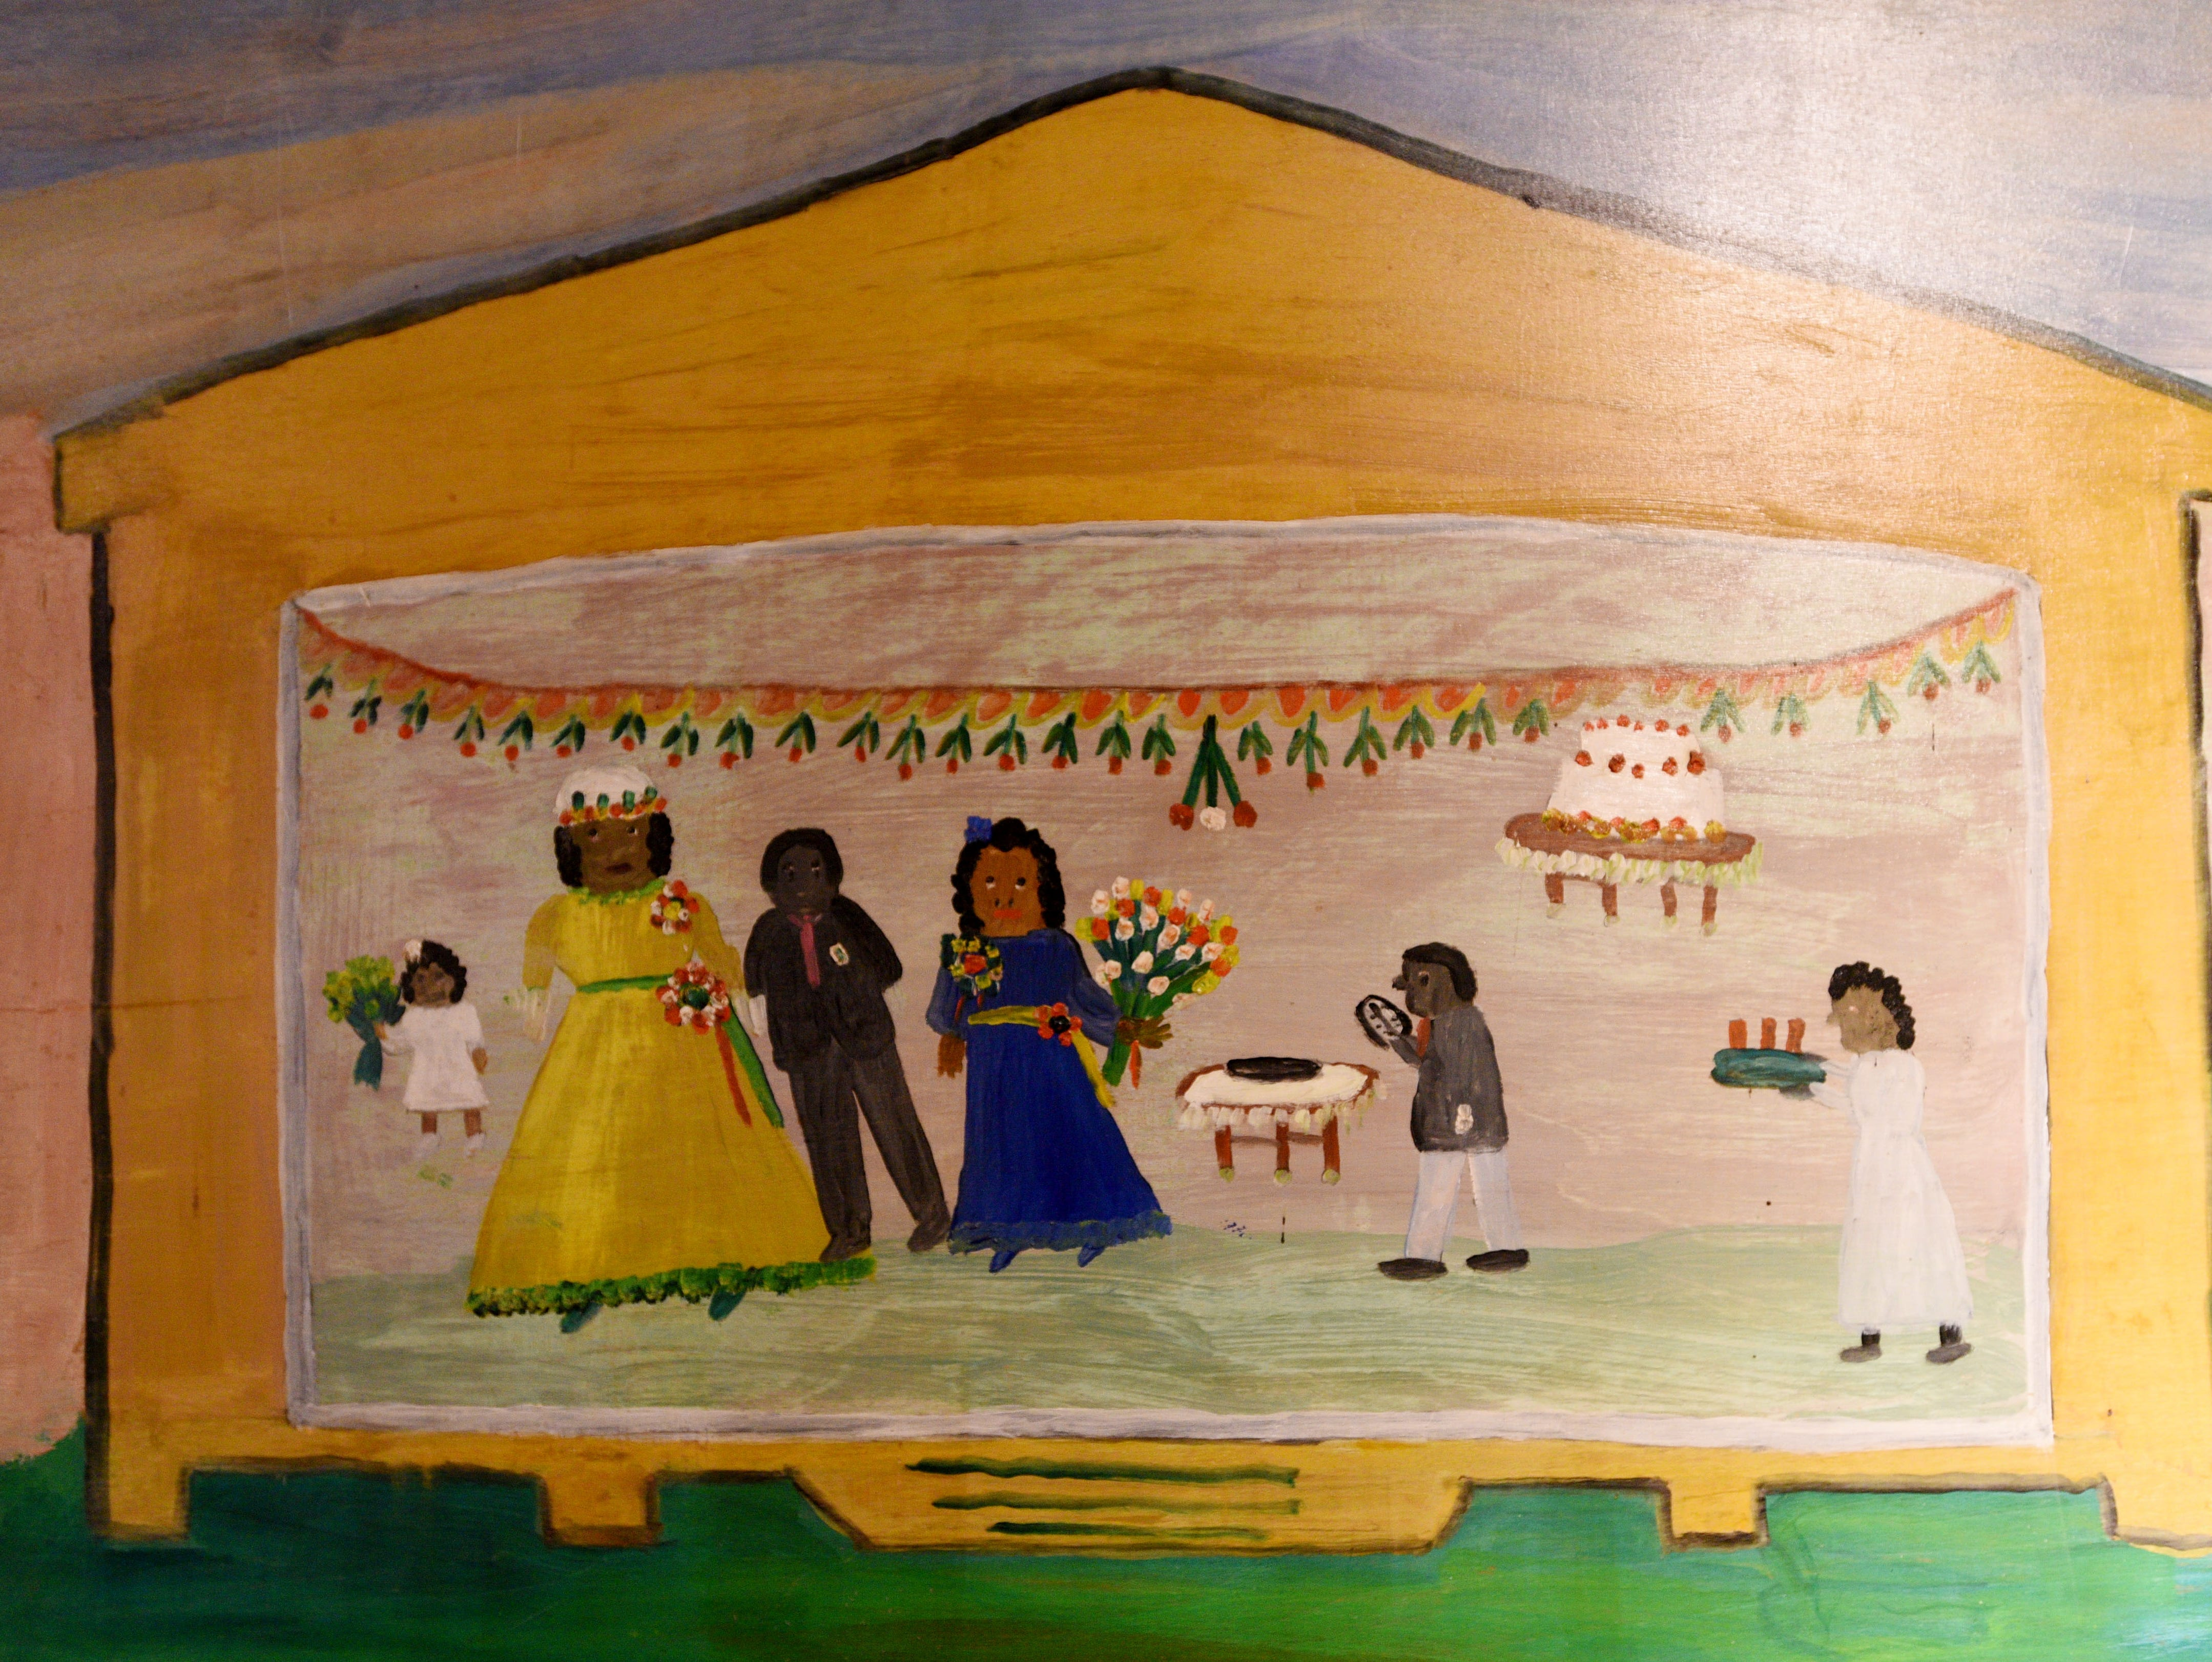 Clementine Hunter's mural in the African House on Melrose Plantation.